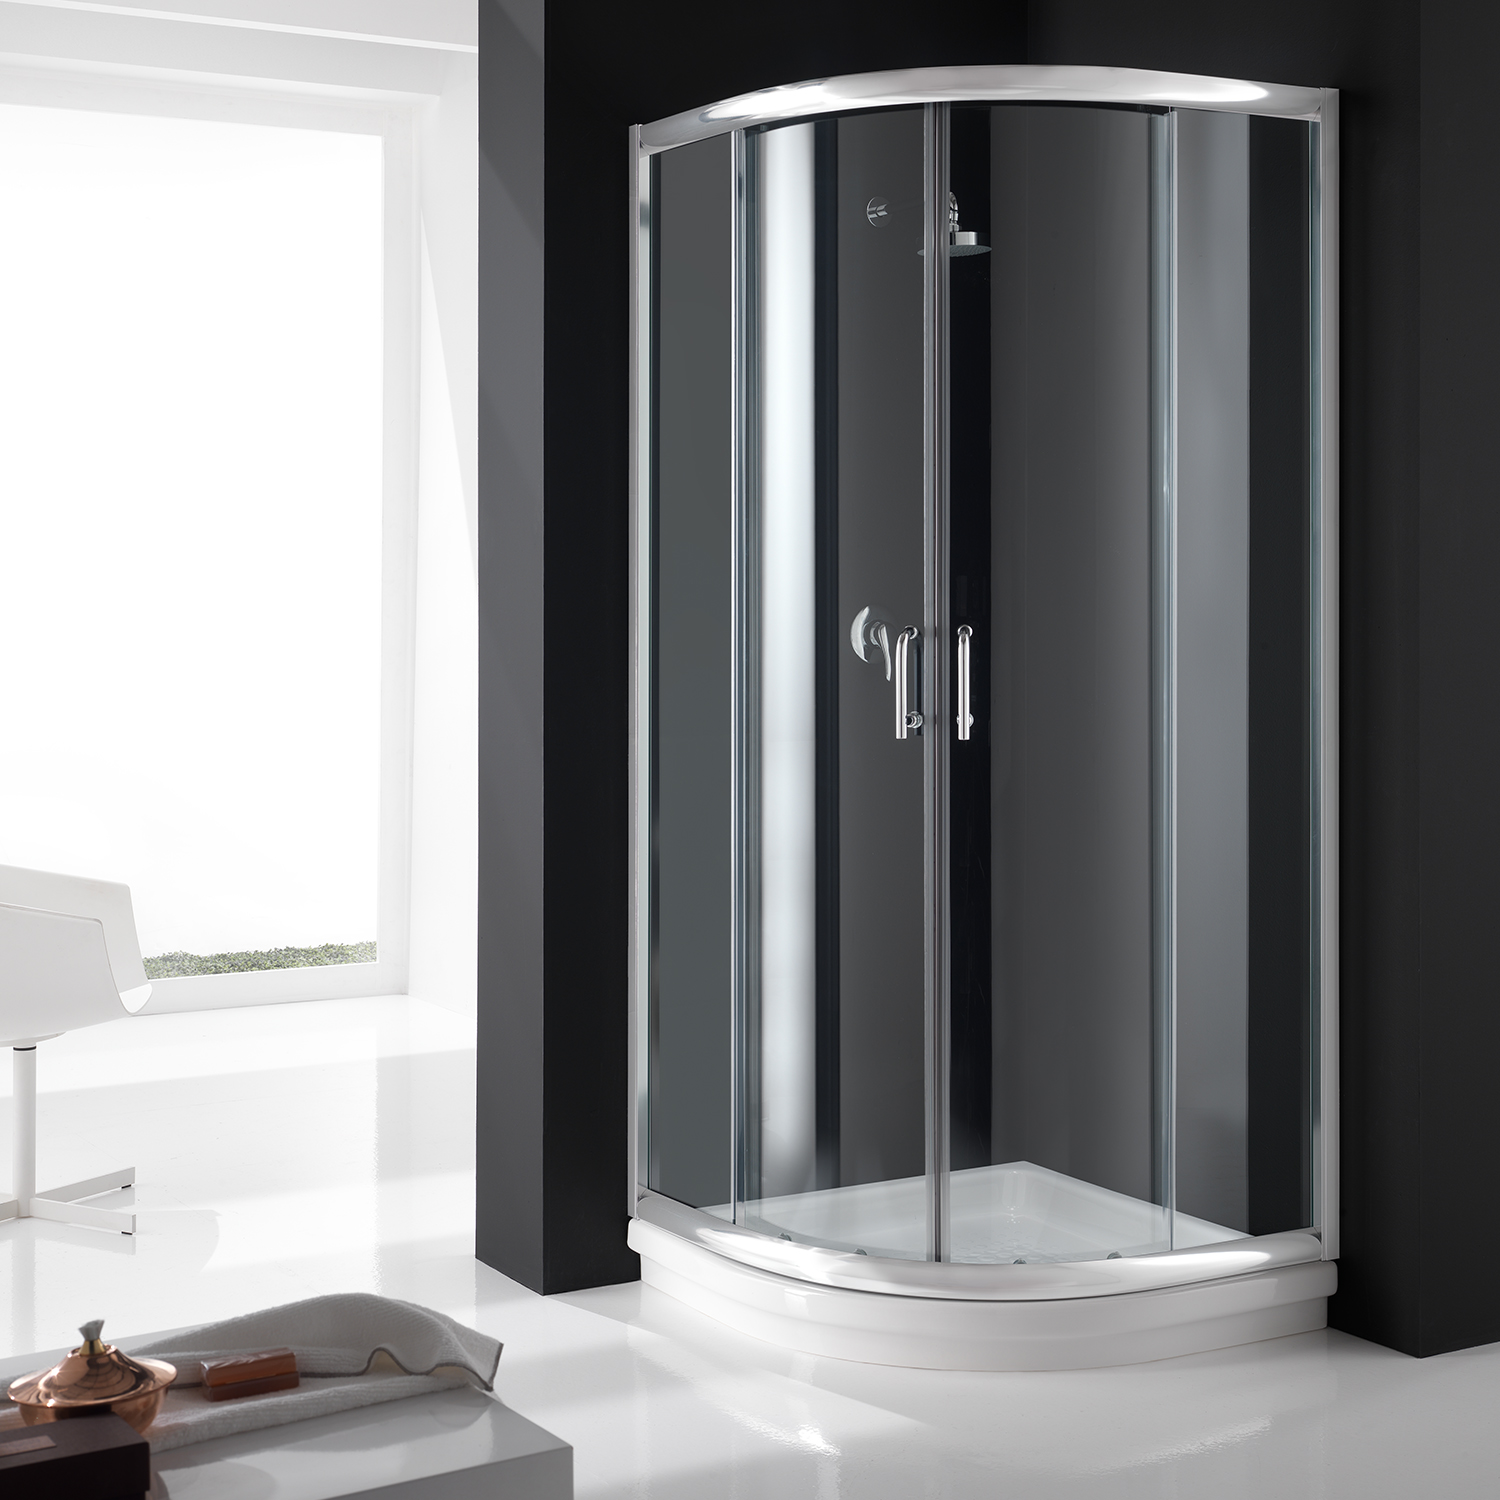 cabine de douche paroi circulaire 80x80 h200 cm verre transparent angulaire ebay. Black Bedroom Furniture Sets. Home Design Ideas